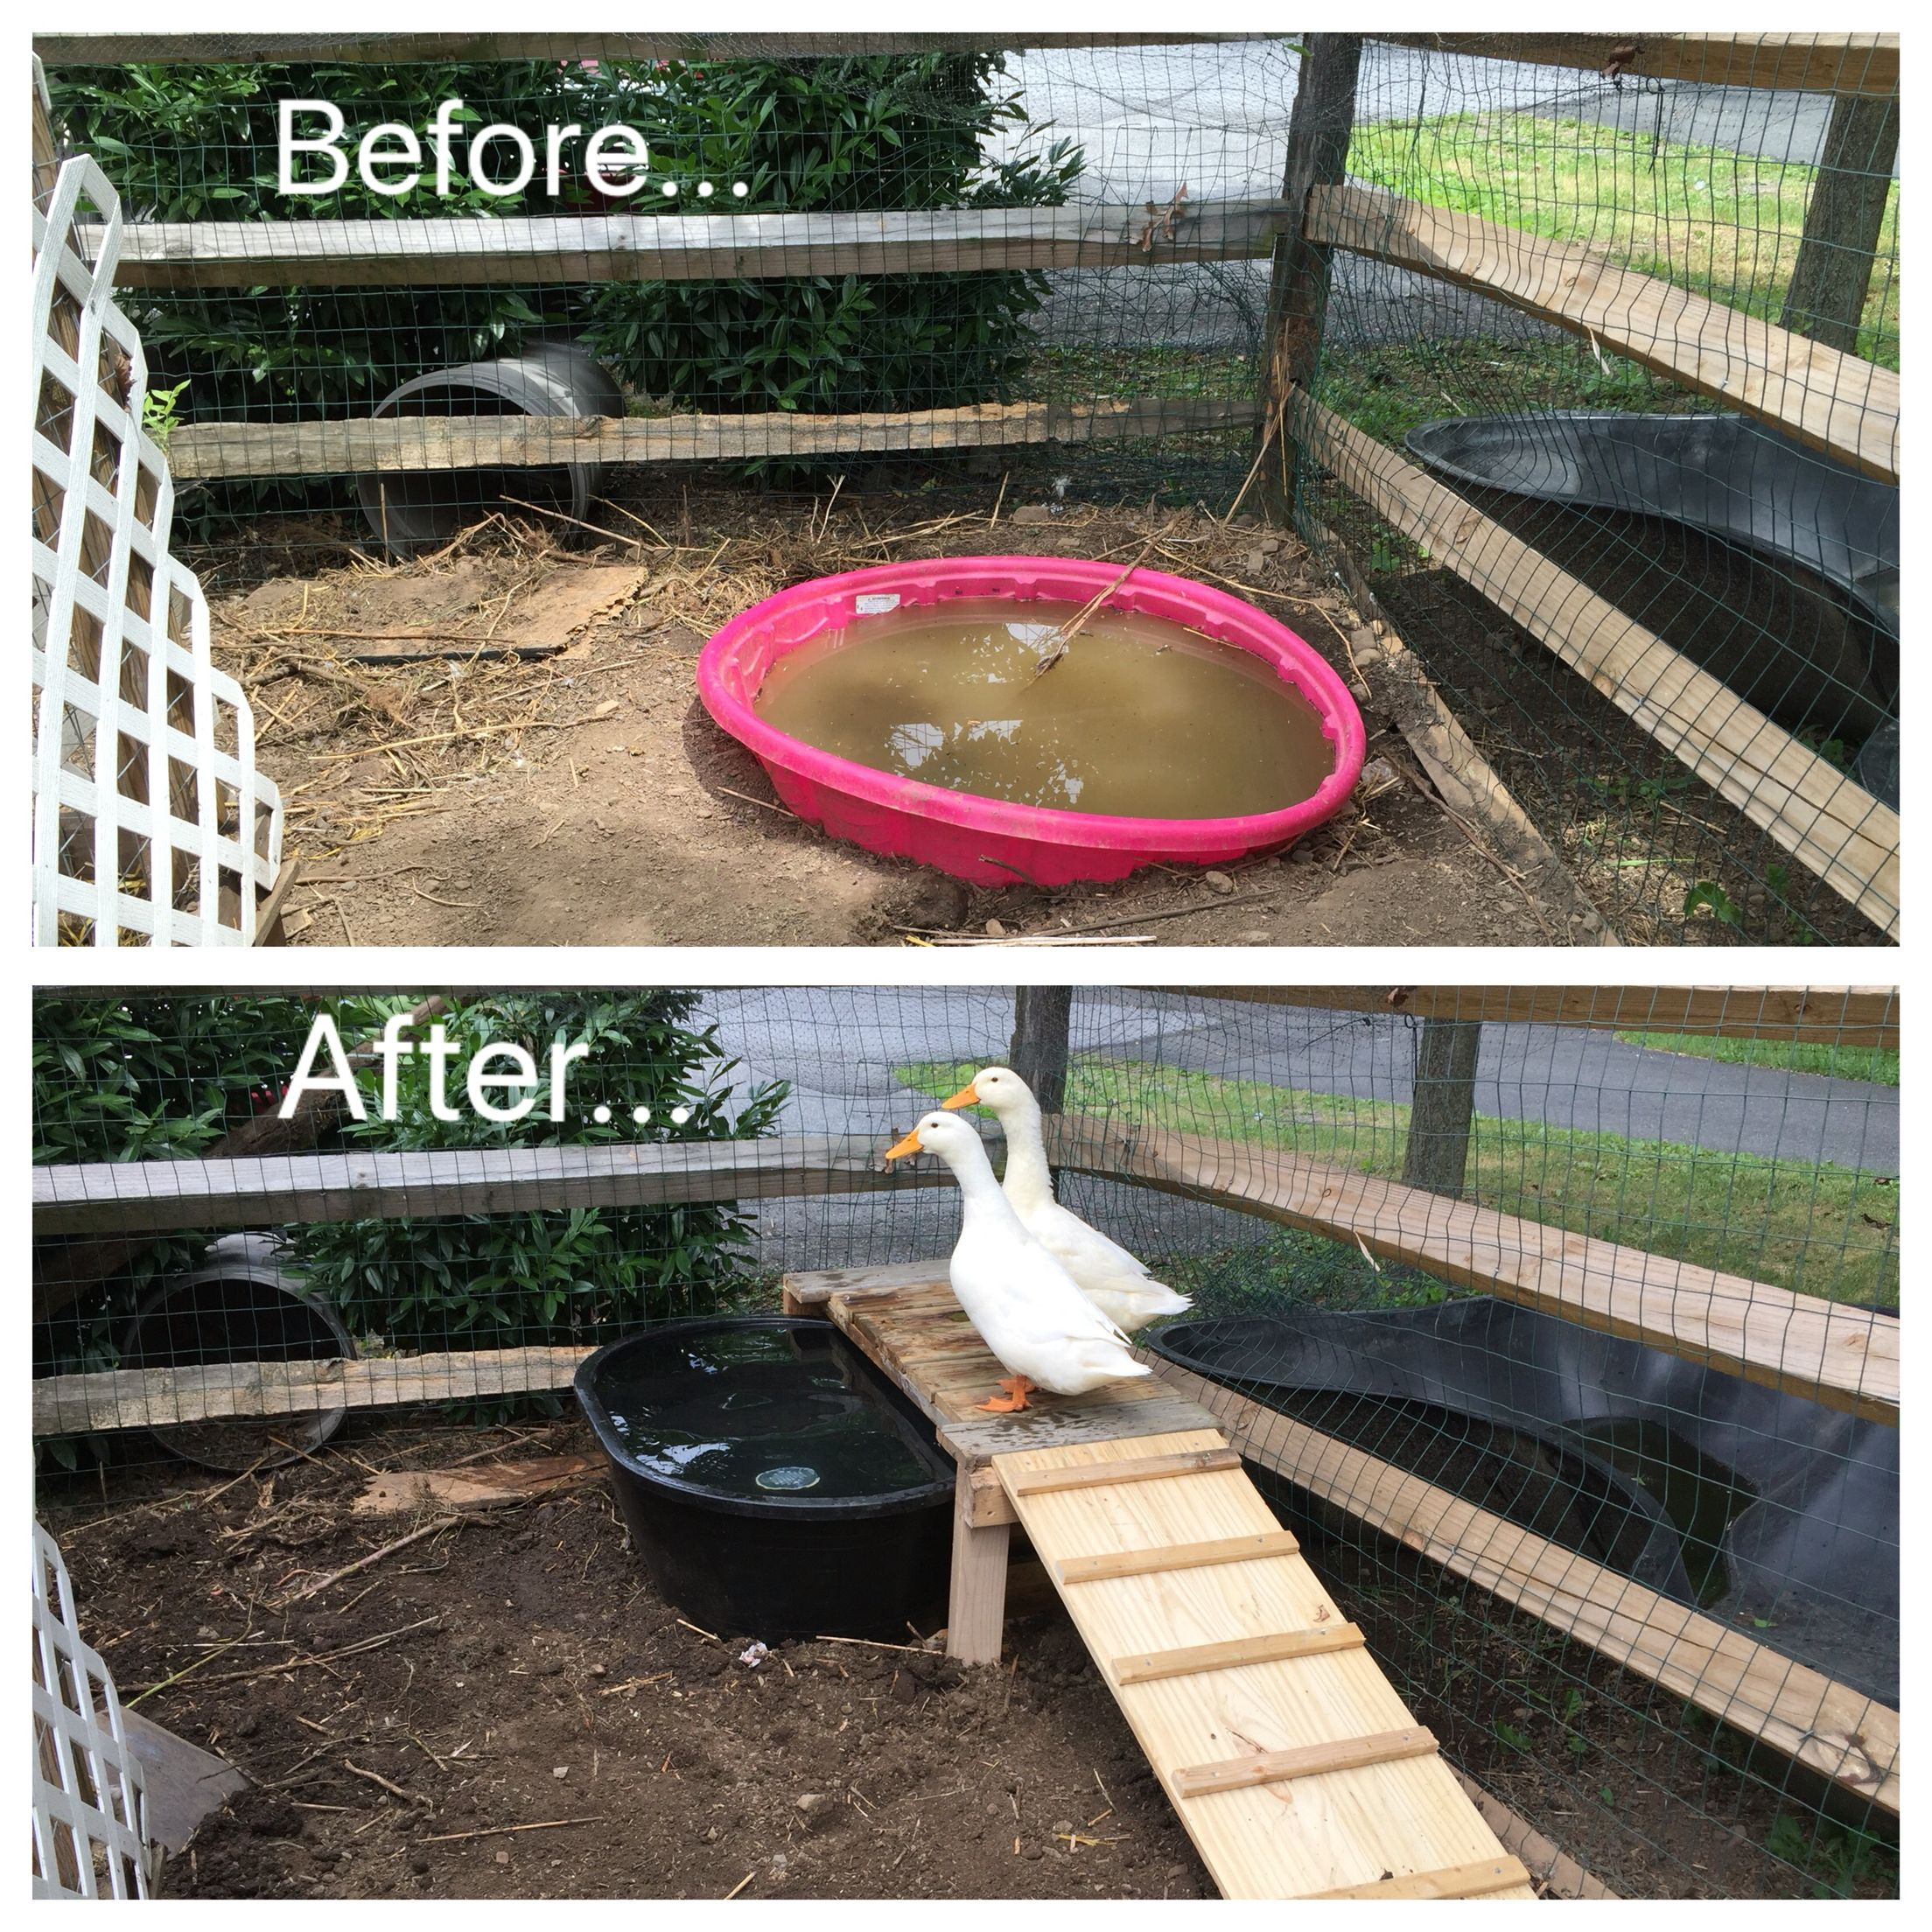 Diy duck pond with ramp and platform made from pallets